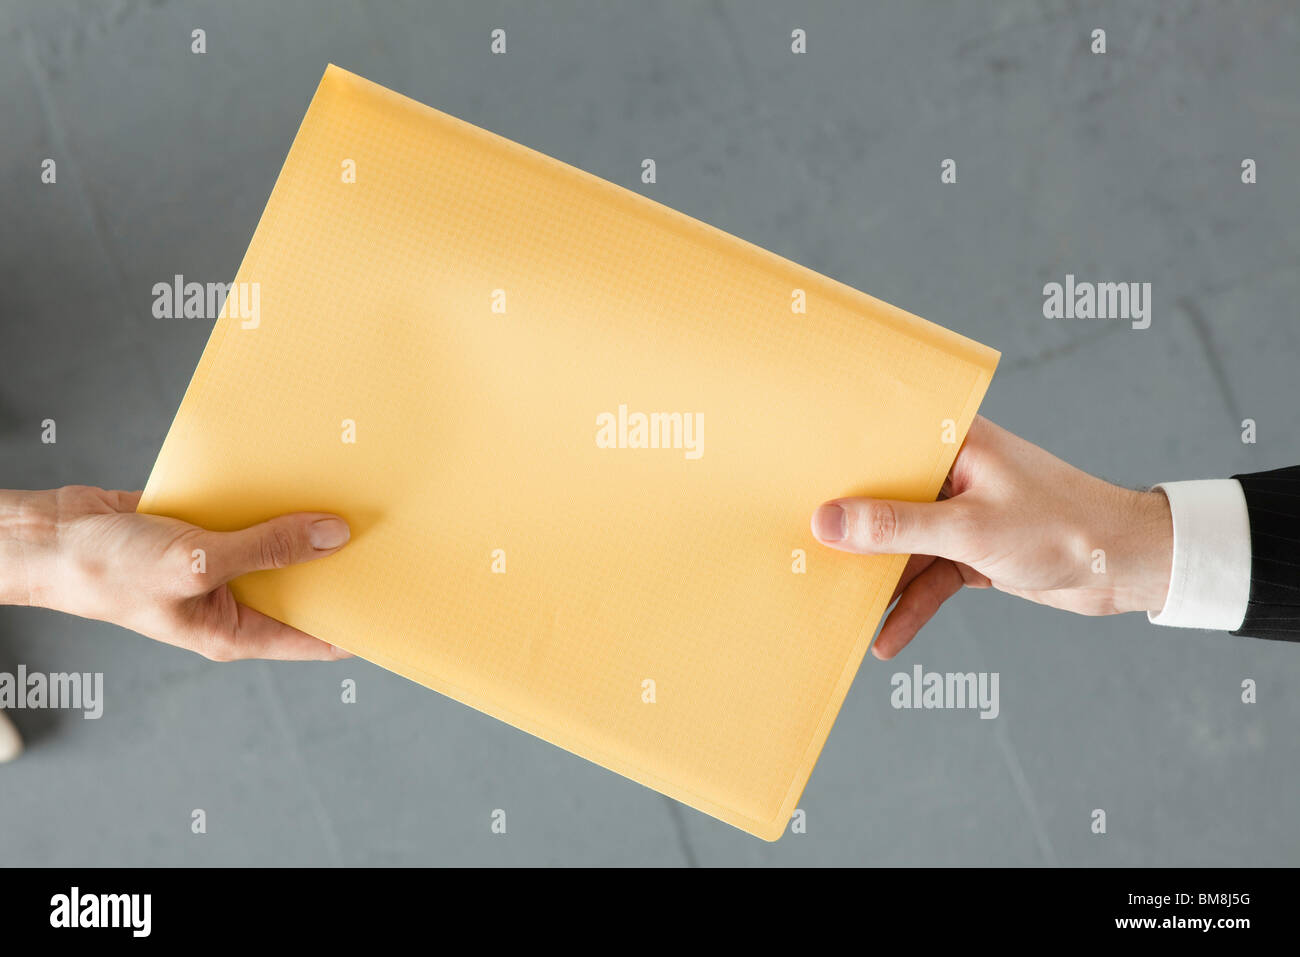 Handing colleague large brown envelope - Stock Image